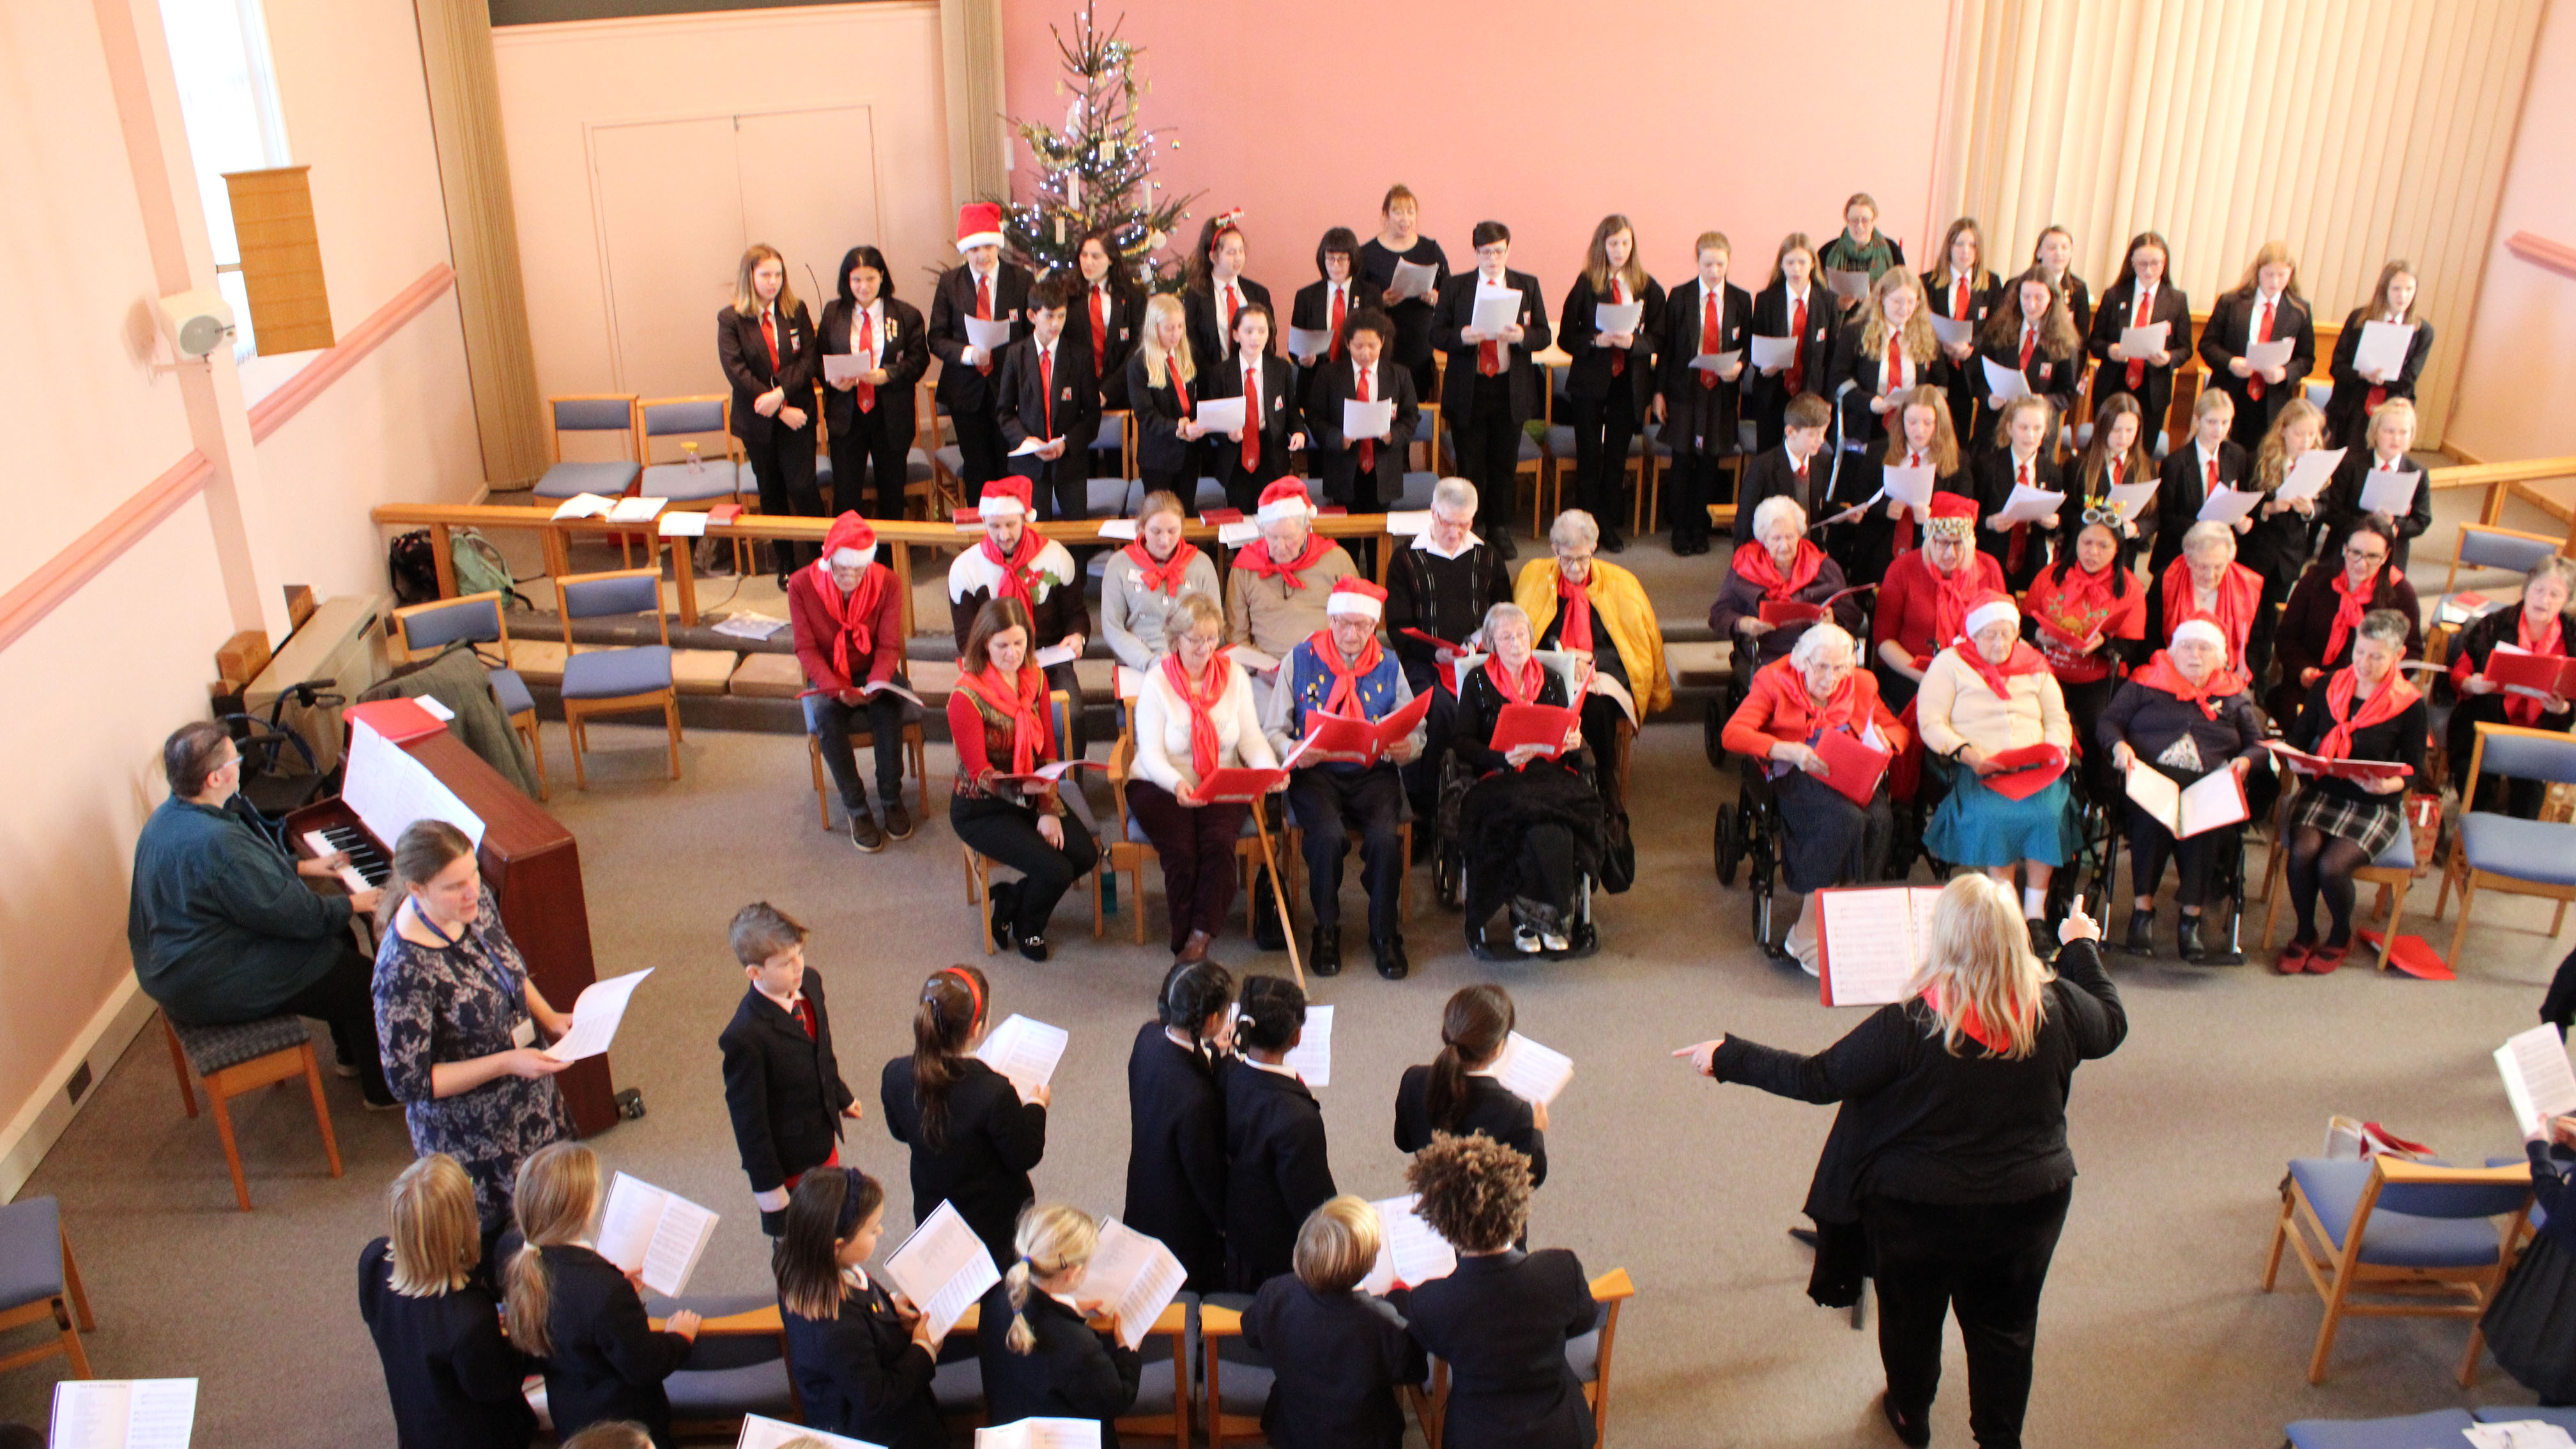 Festive fun enjoyed by young and old at the Woodbridge Combined Care Homes Choir Christmas Concert